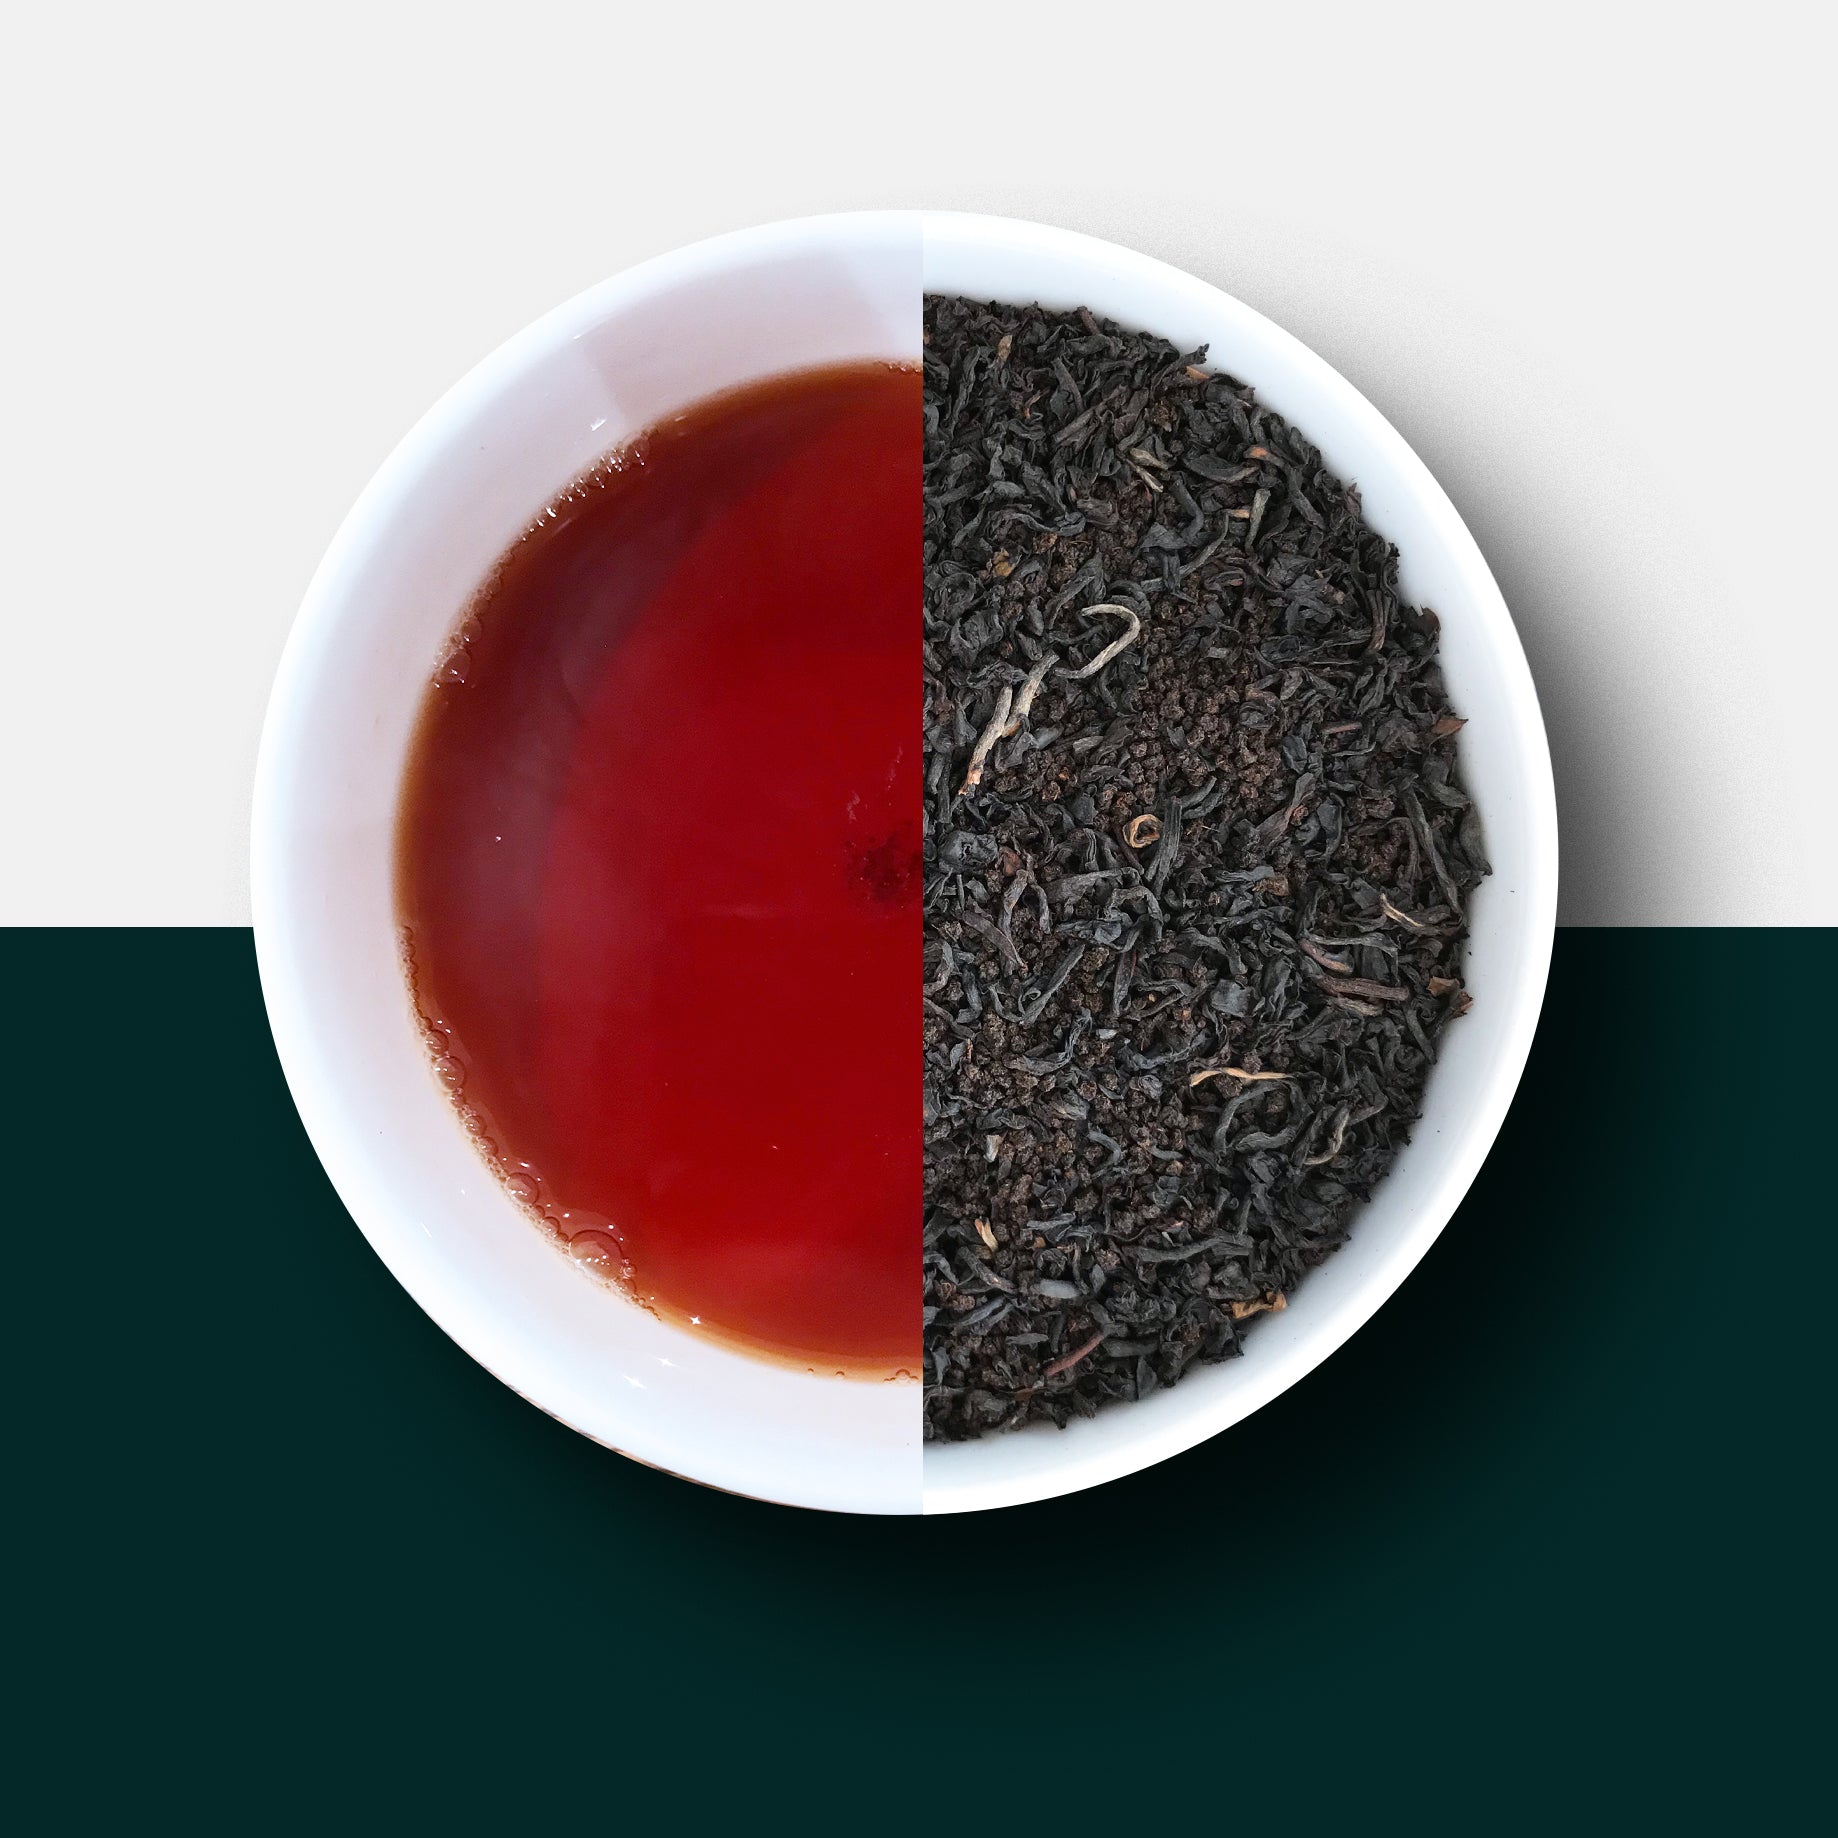 Black tea - Brexit Blend loose leaf tea and liquor